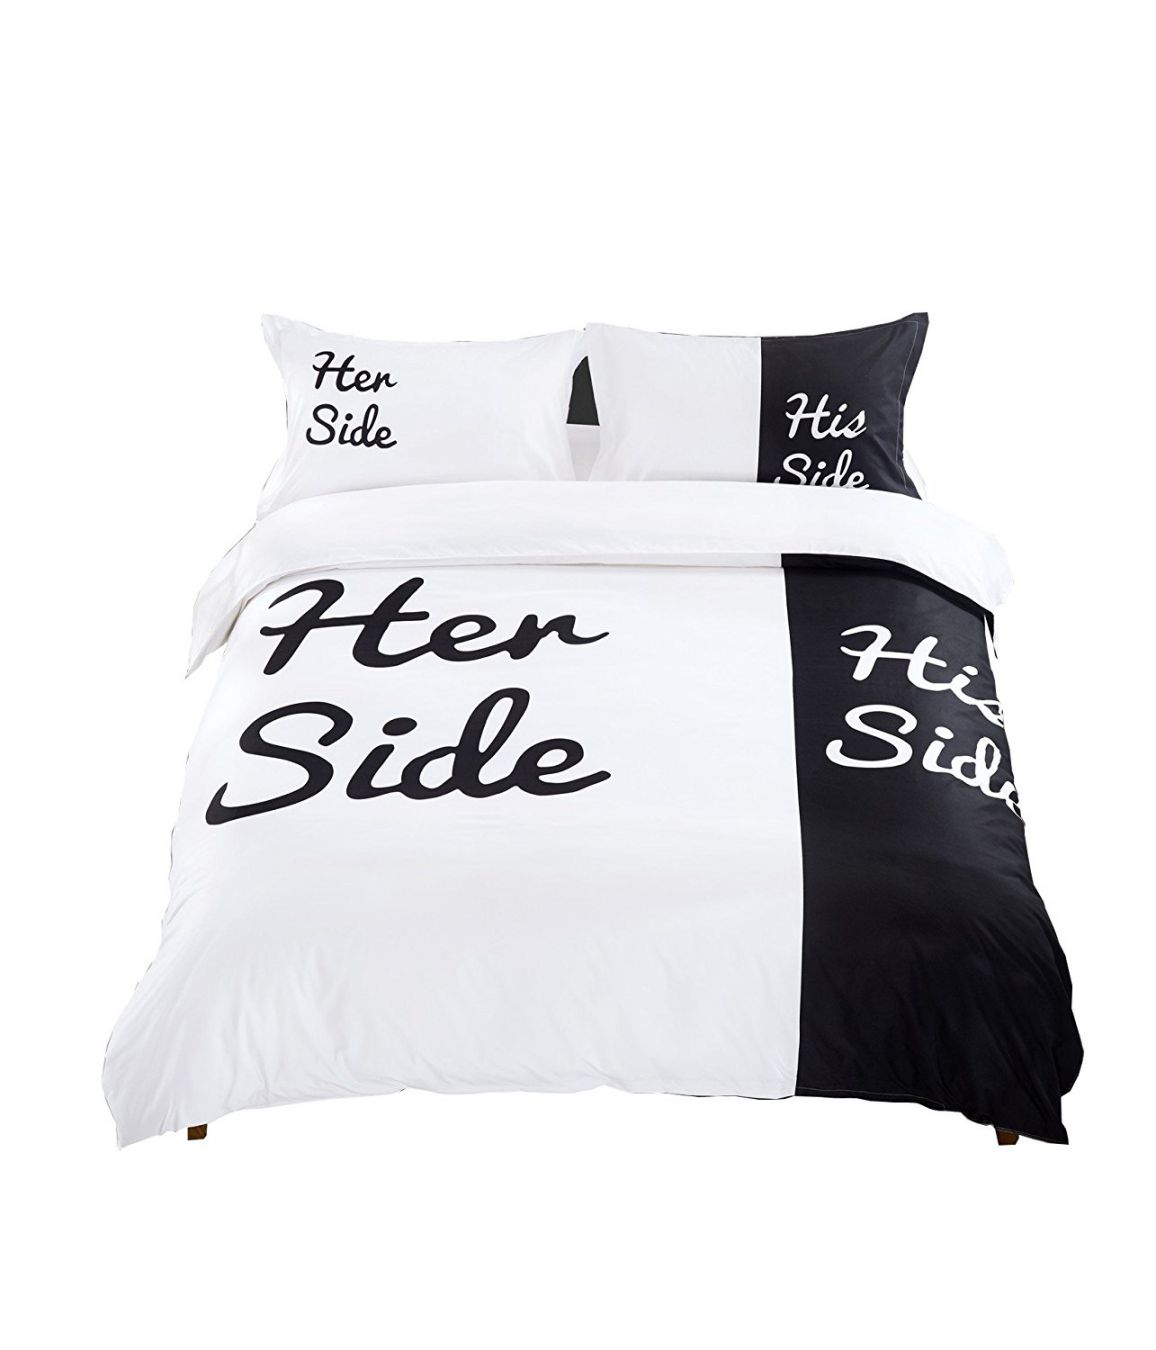 D-Sun His Side and Her Side Cotton 4-Piece Duvet Cover Set